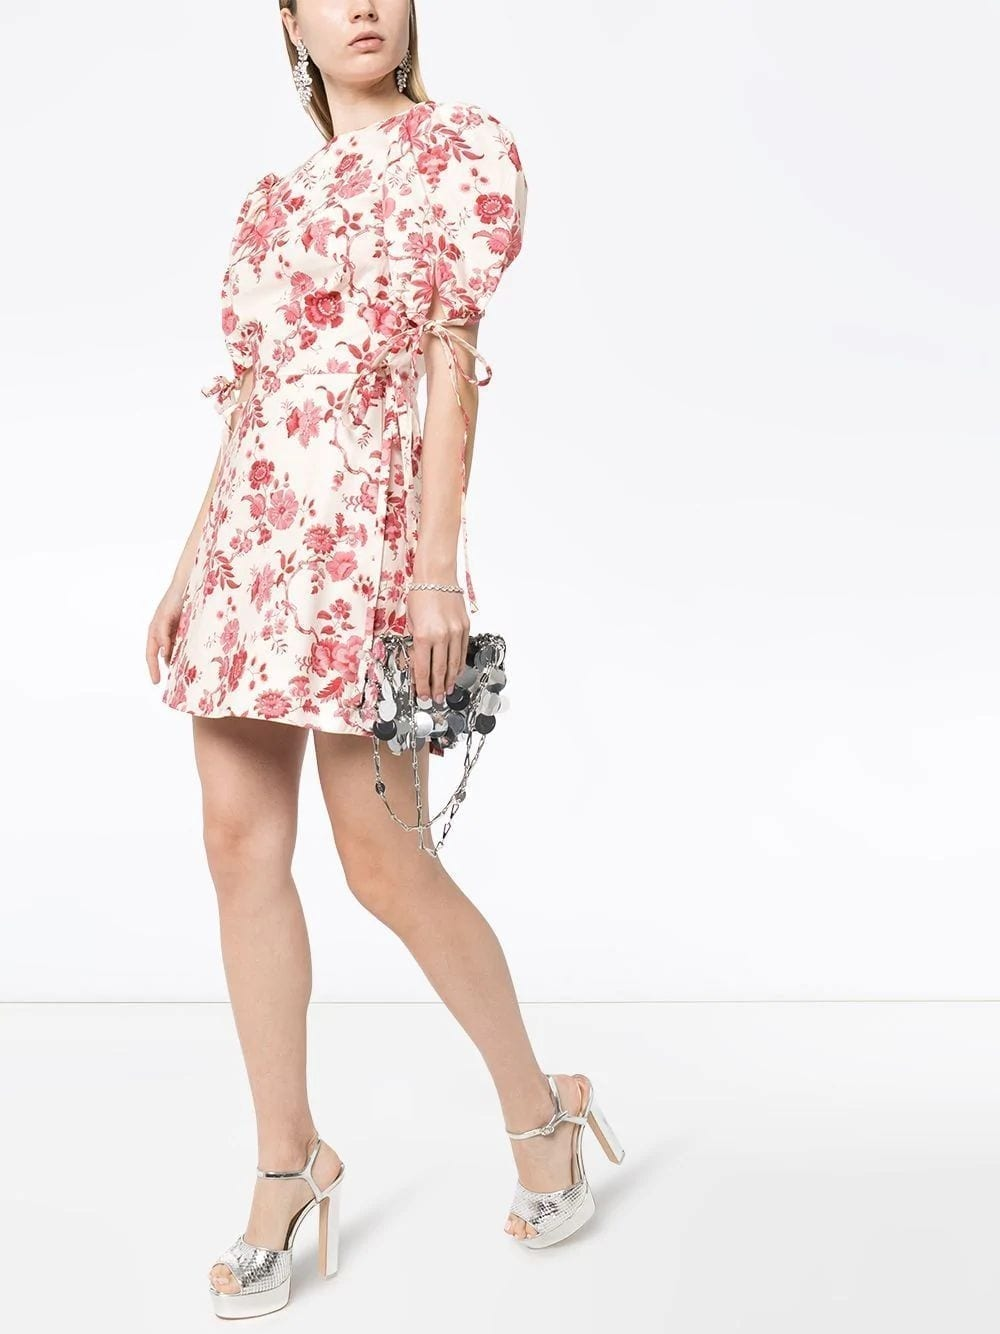 THE VAMPIRE'S WIFE Red Floral Wrapsody Mini Dress